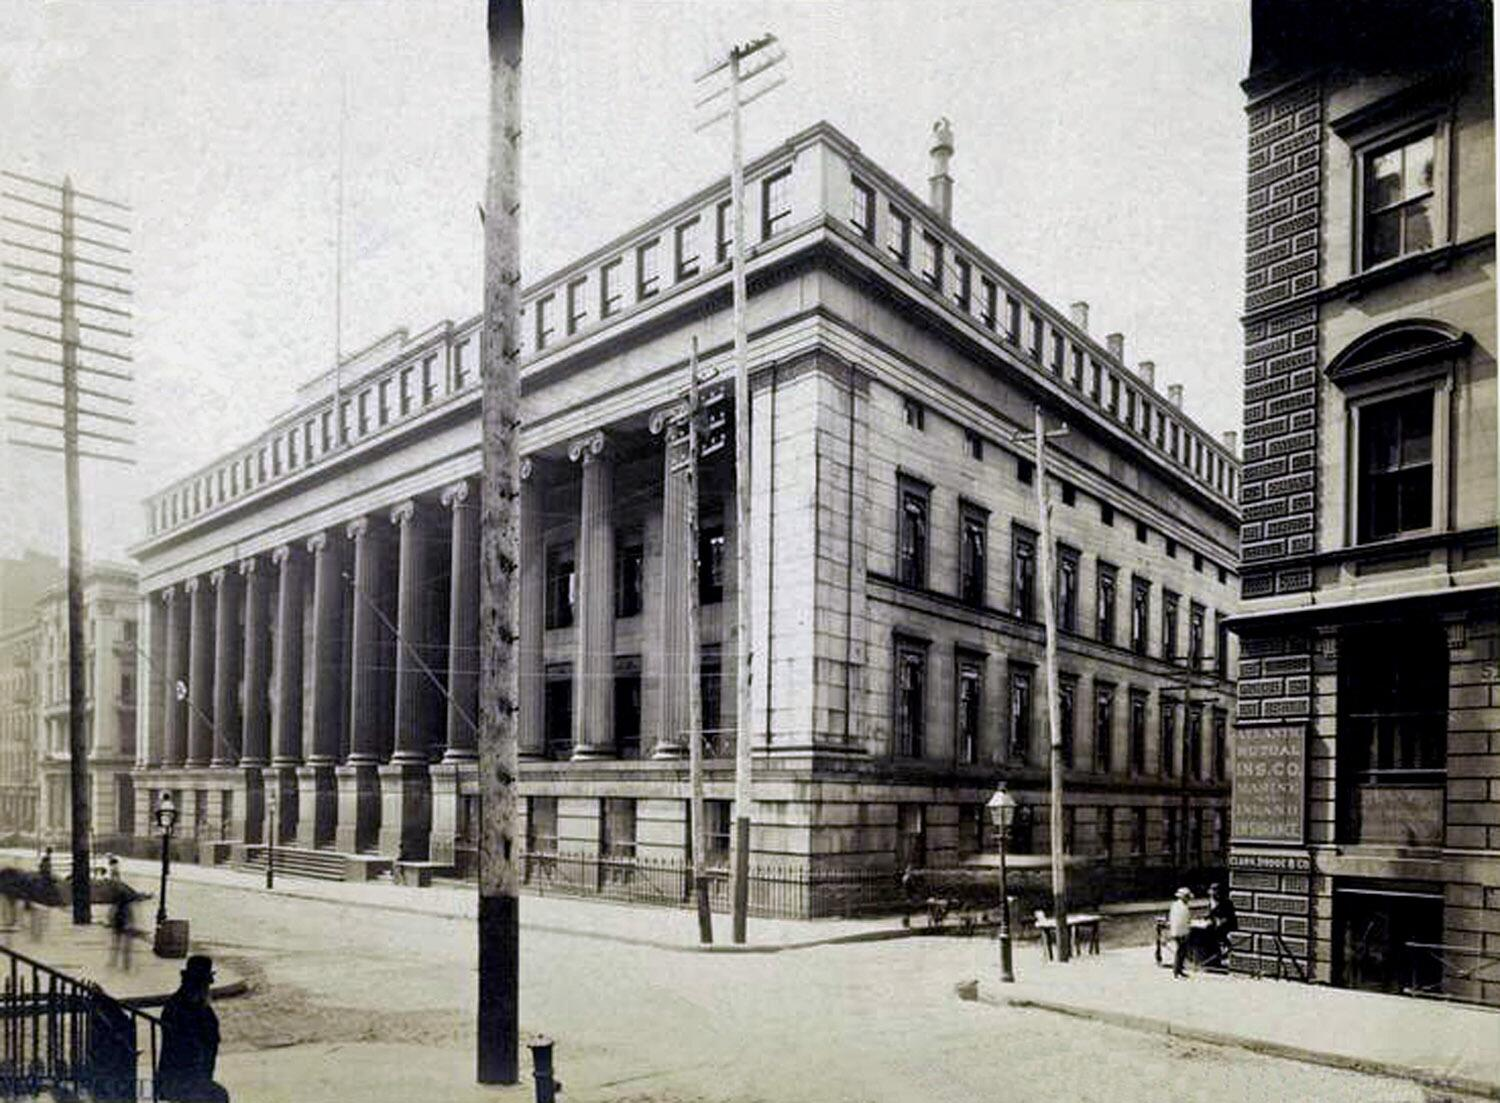 "New York Custom House at 55 Wall Street.The offices of the collectors of customs were located in this building during the period Herman Melville worked as a customs inspector. Melville spent his working days as an inspector on the ""outside"" on various of the wharves that lined the North River (now the Hudson River). He and his partner(s) were responsible for renting their own ""office"" space to accommodate themselves and their equipment. When asked how he had managed to retain his job through many changes of administration, Melvill replied that he seldom made an appearance at the Wall Street customhouse -- in other words, the politicians forgot about the quiet, withdrawn older man toiling dutifully under adverse conditions that eventually broke his health and mental stability."